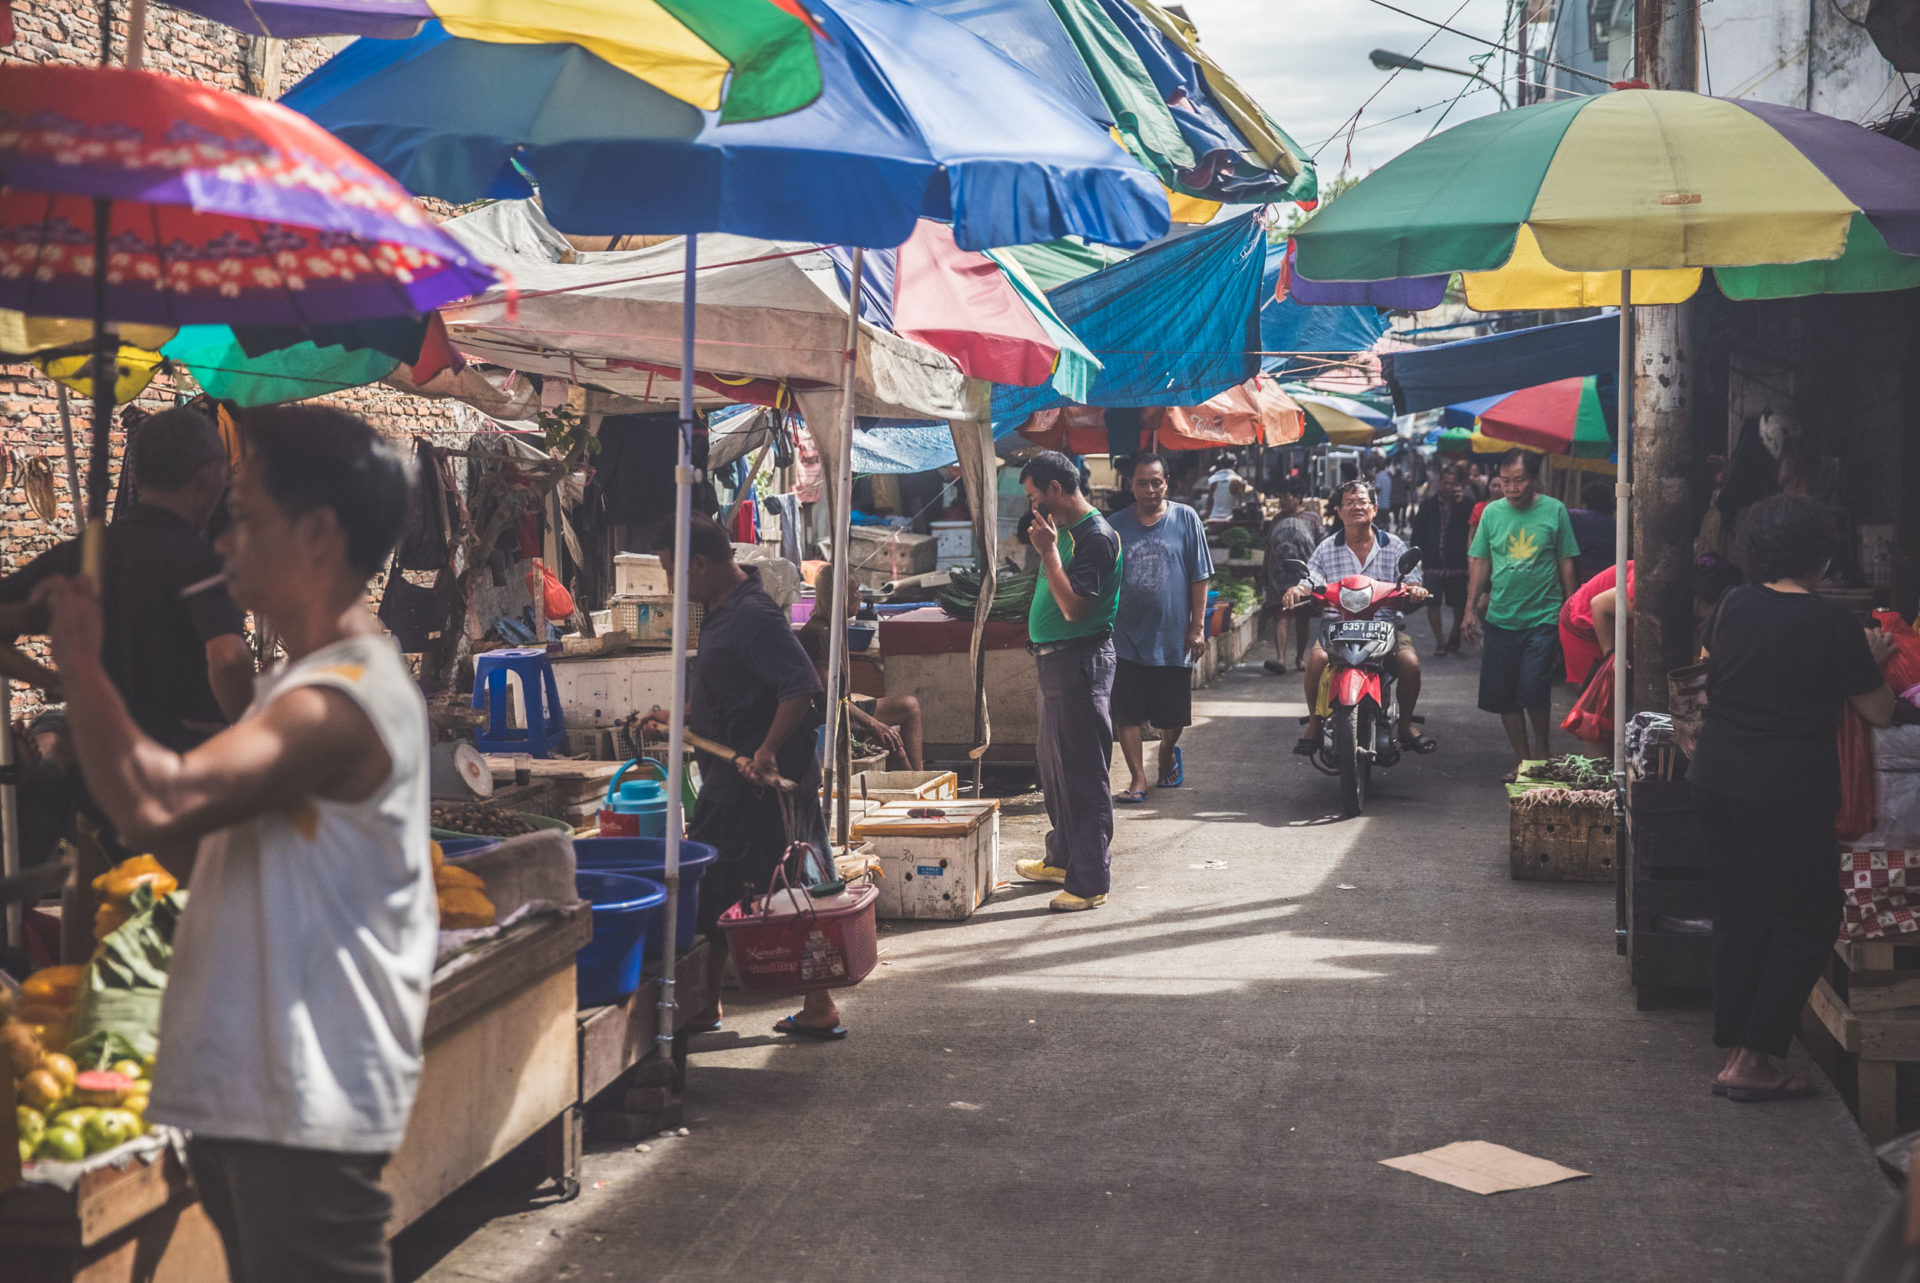 Busy market with many colourful parasols